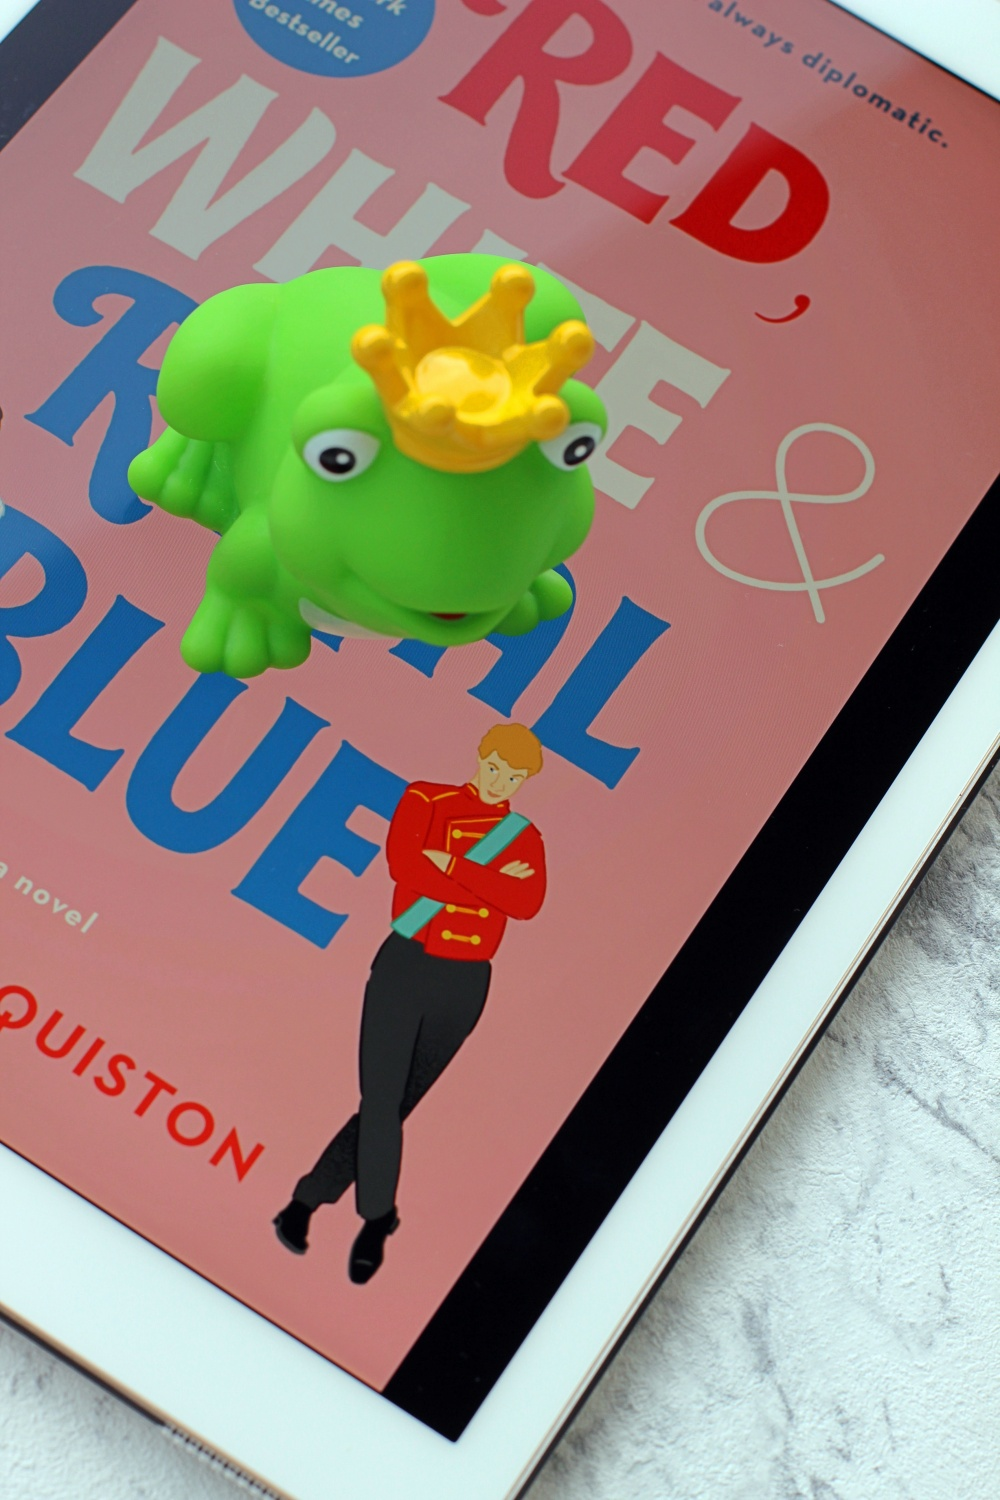 Rezension Red White & Royal Blue von Casey McQuiston